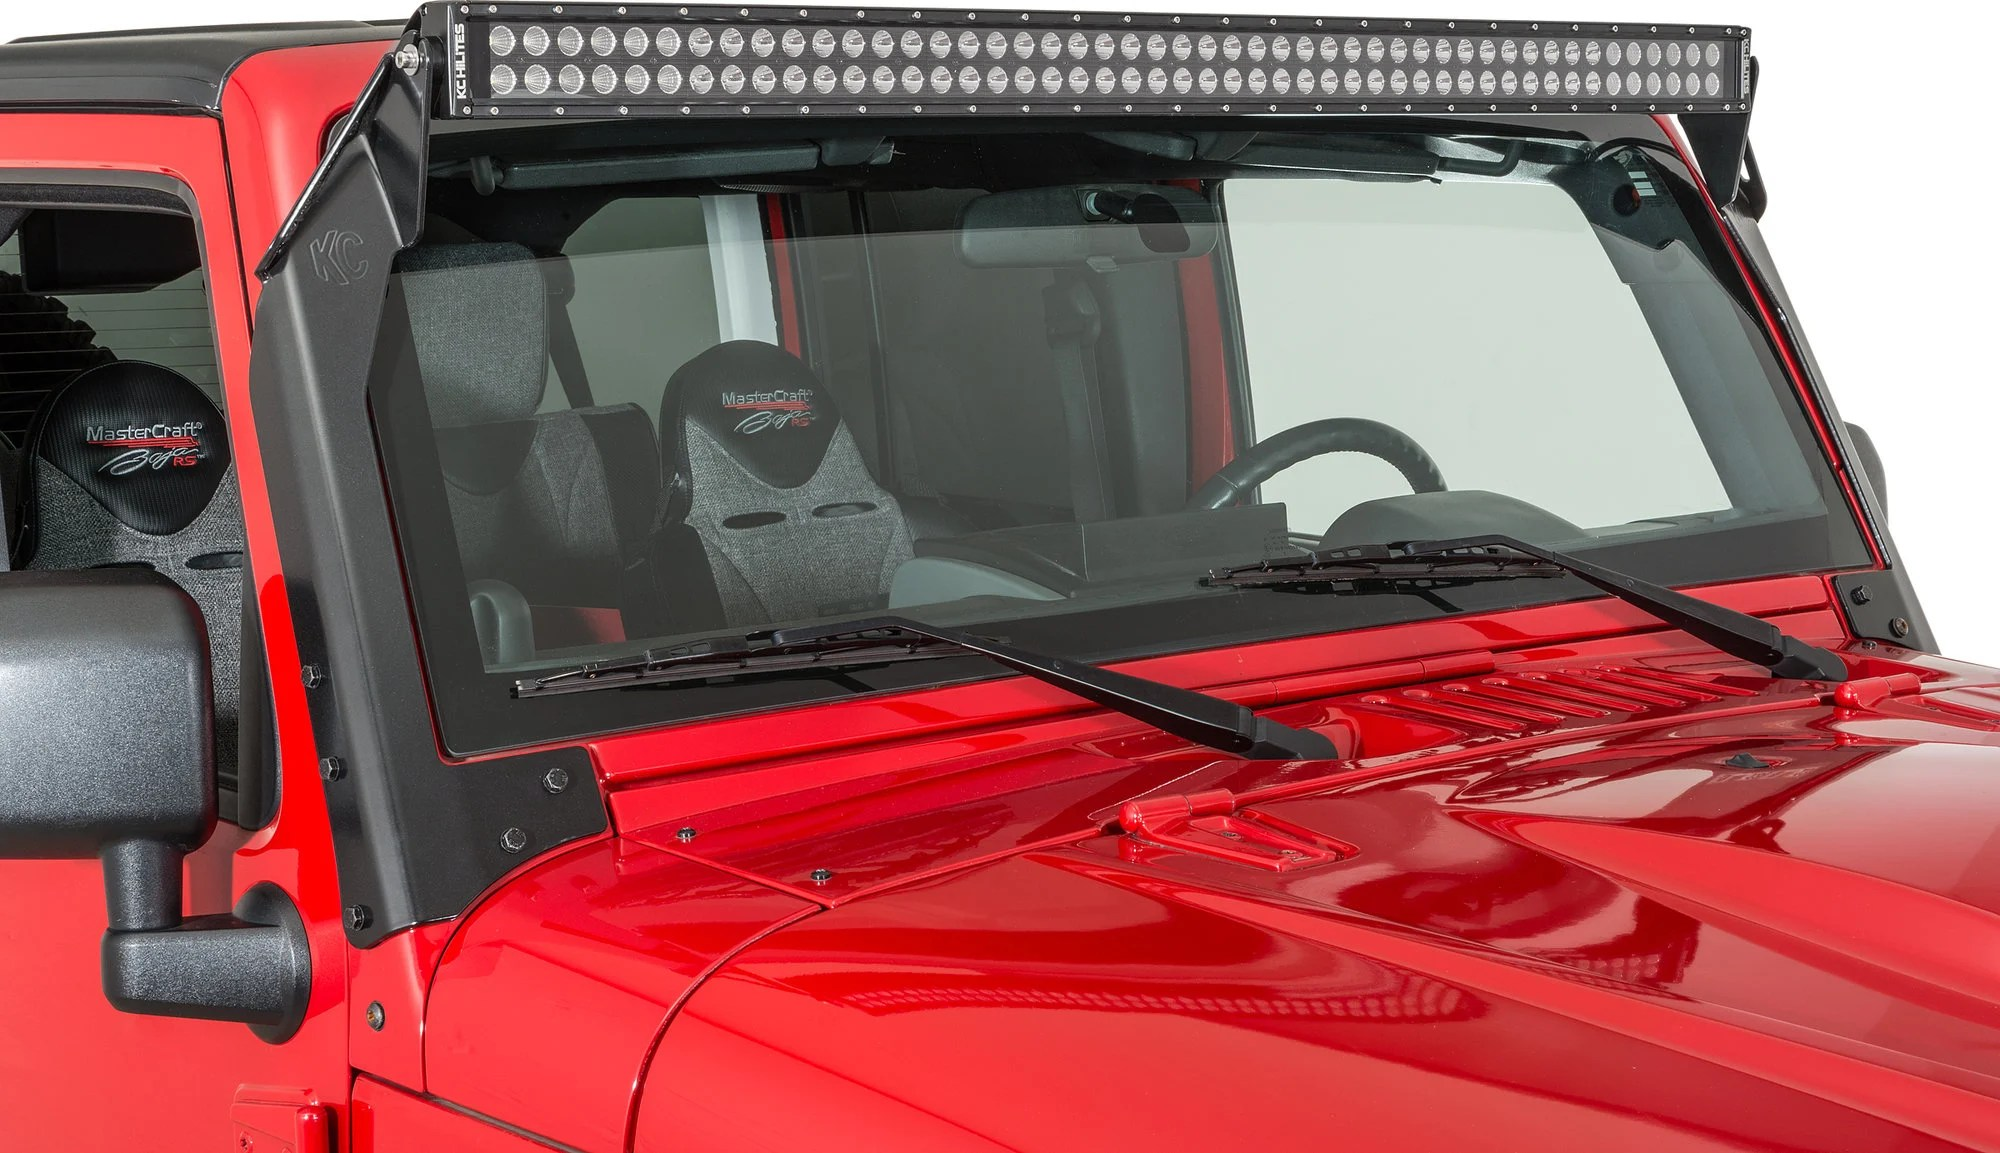 Zj Led Light Bar Mount